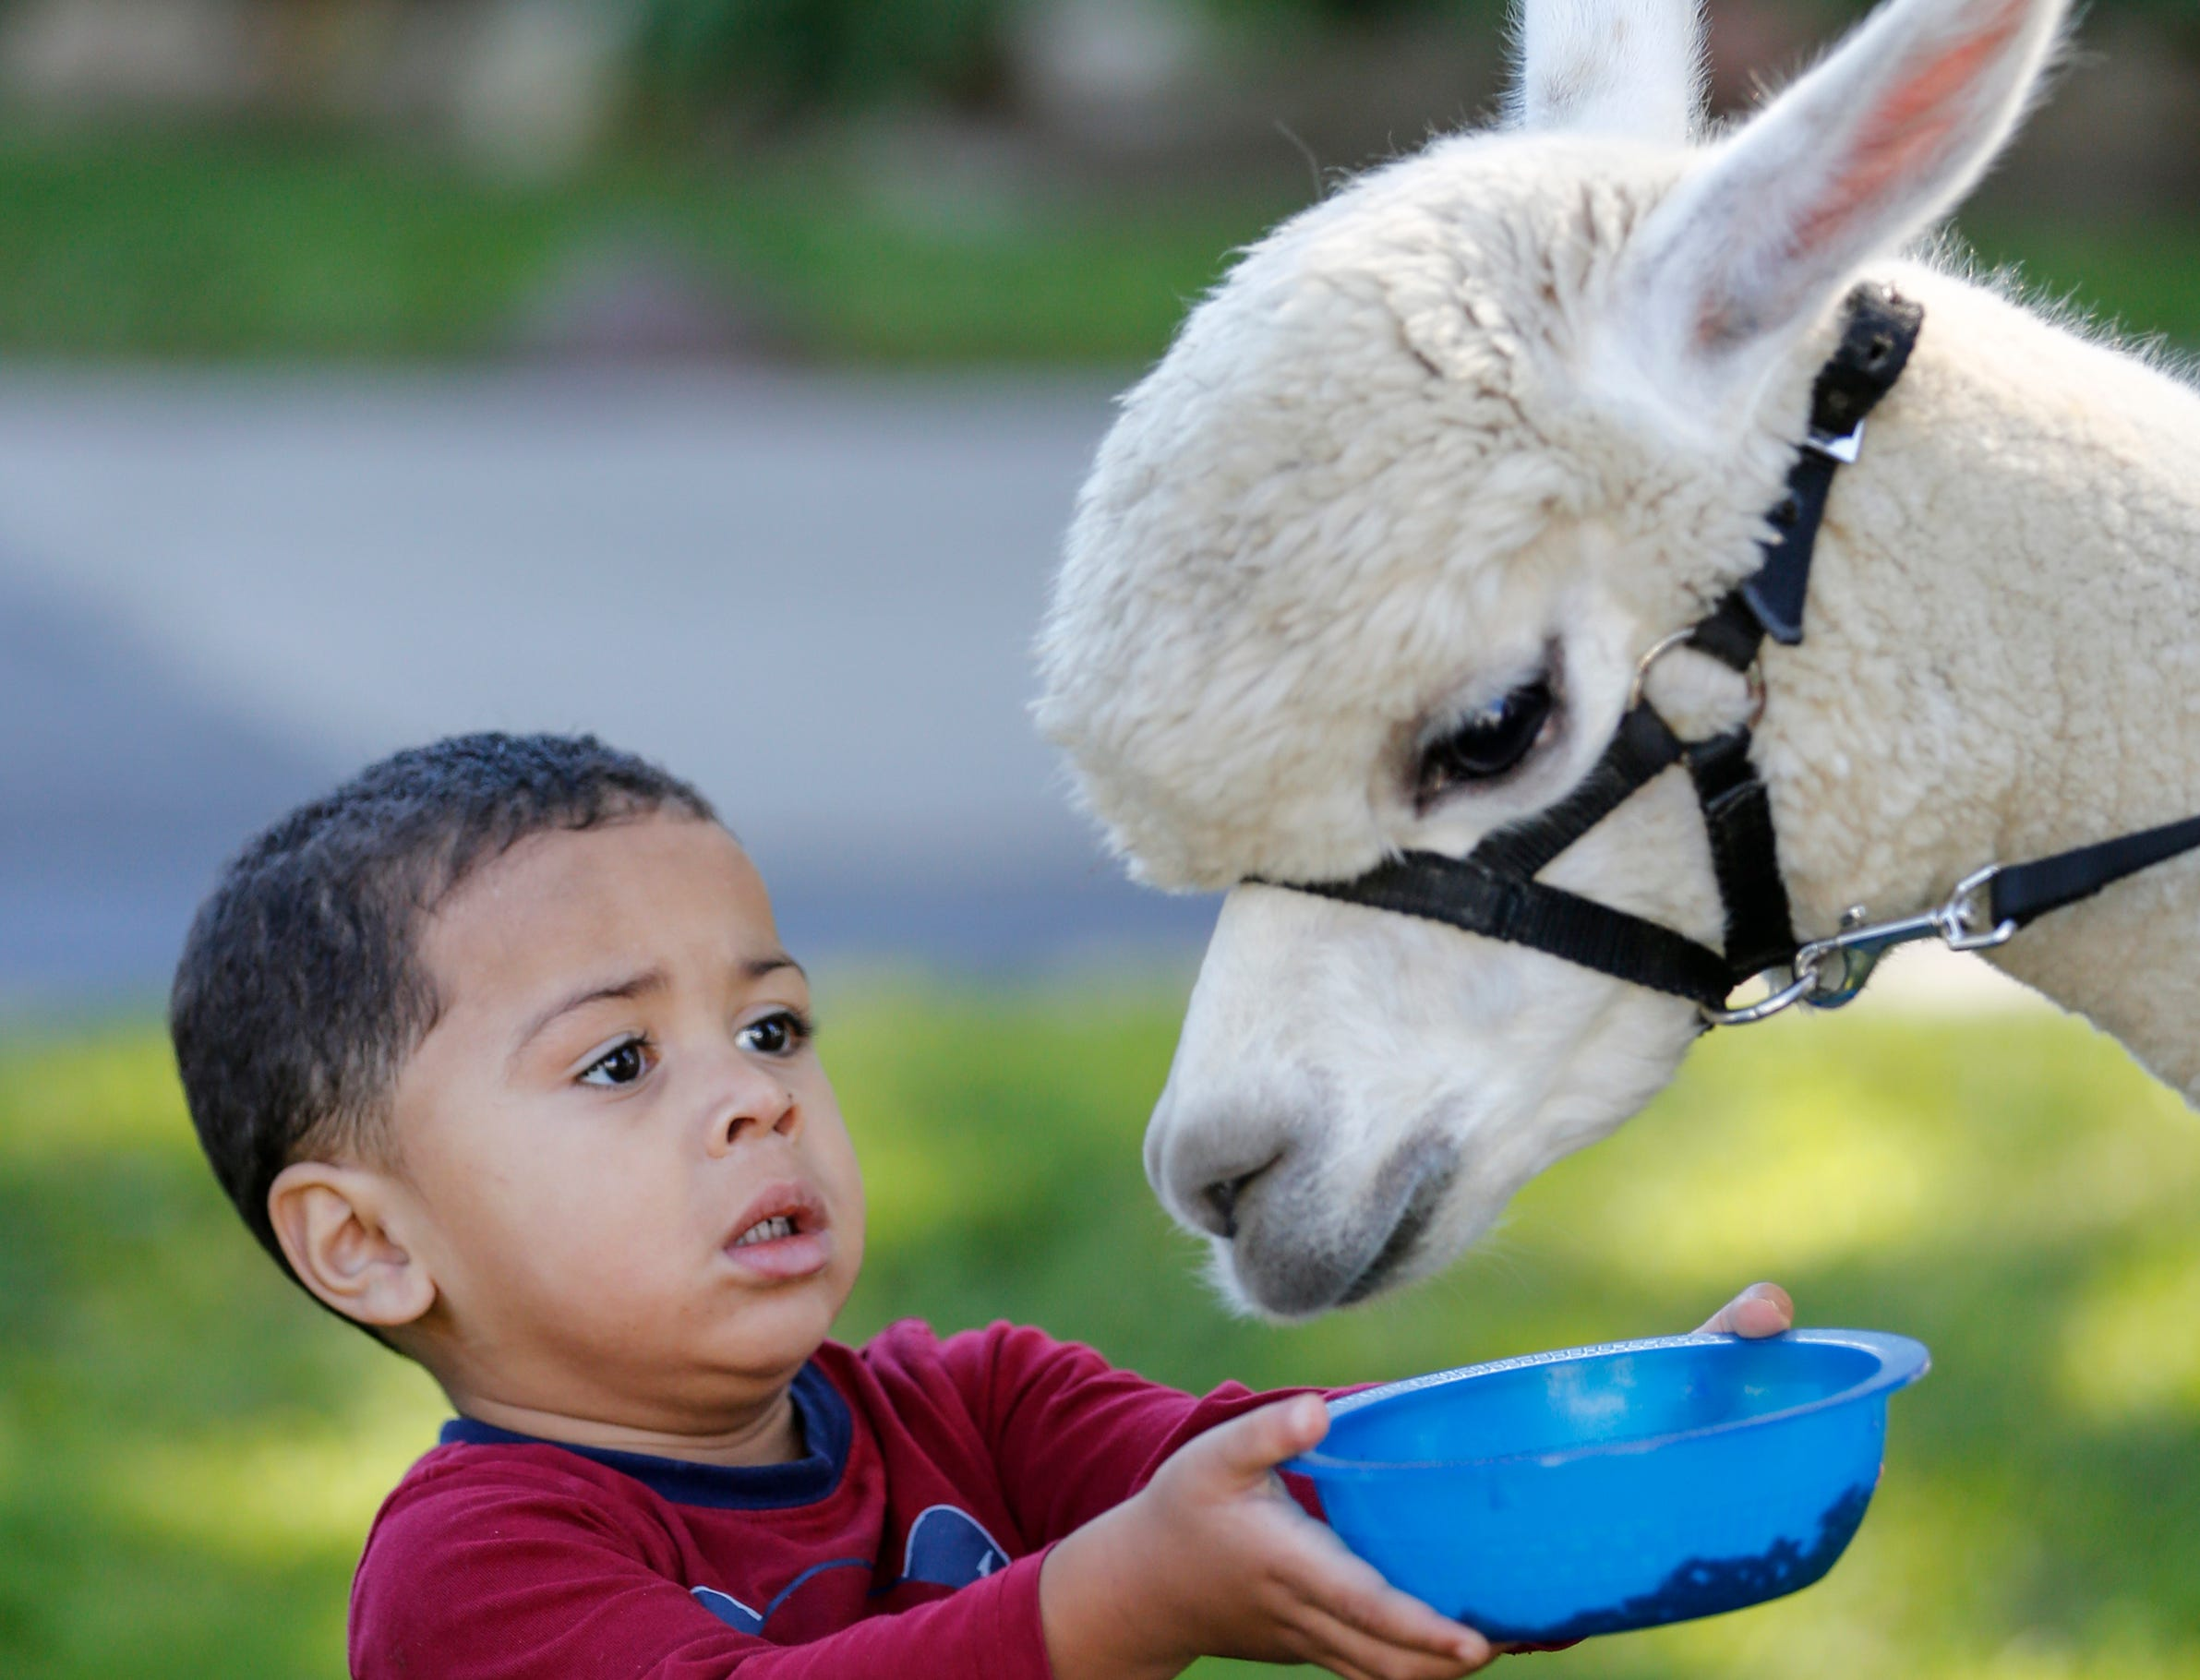 Milo Revees, 2, of Manitowoc, attempts to feed an alpaca during National Alpaca Days at LondonDairy Alpaca Ranch Saturday, September 22, 2018, in Two Rivers, Wis. Josh Clark/USA TODAY NETWORK-Wisconsin